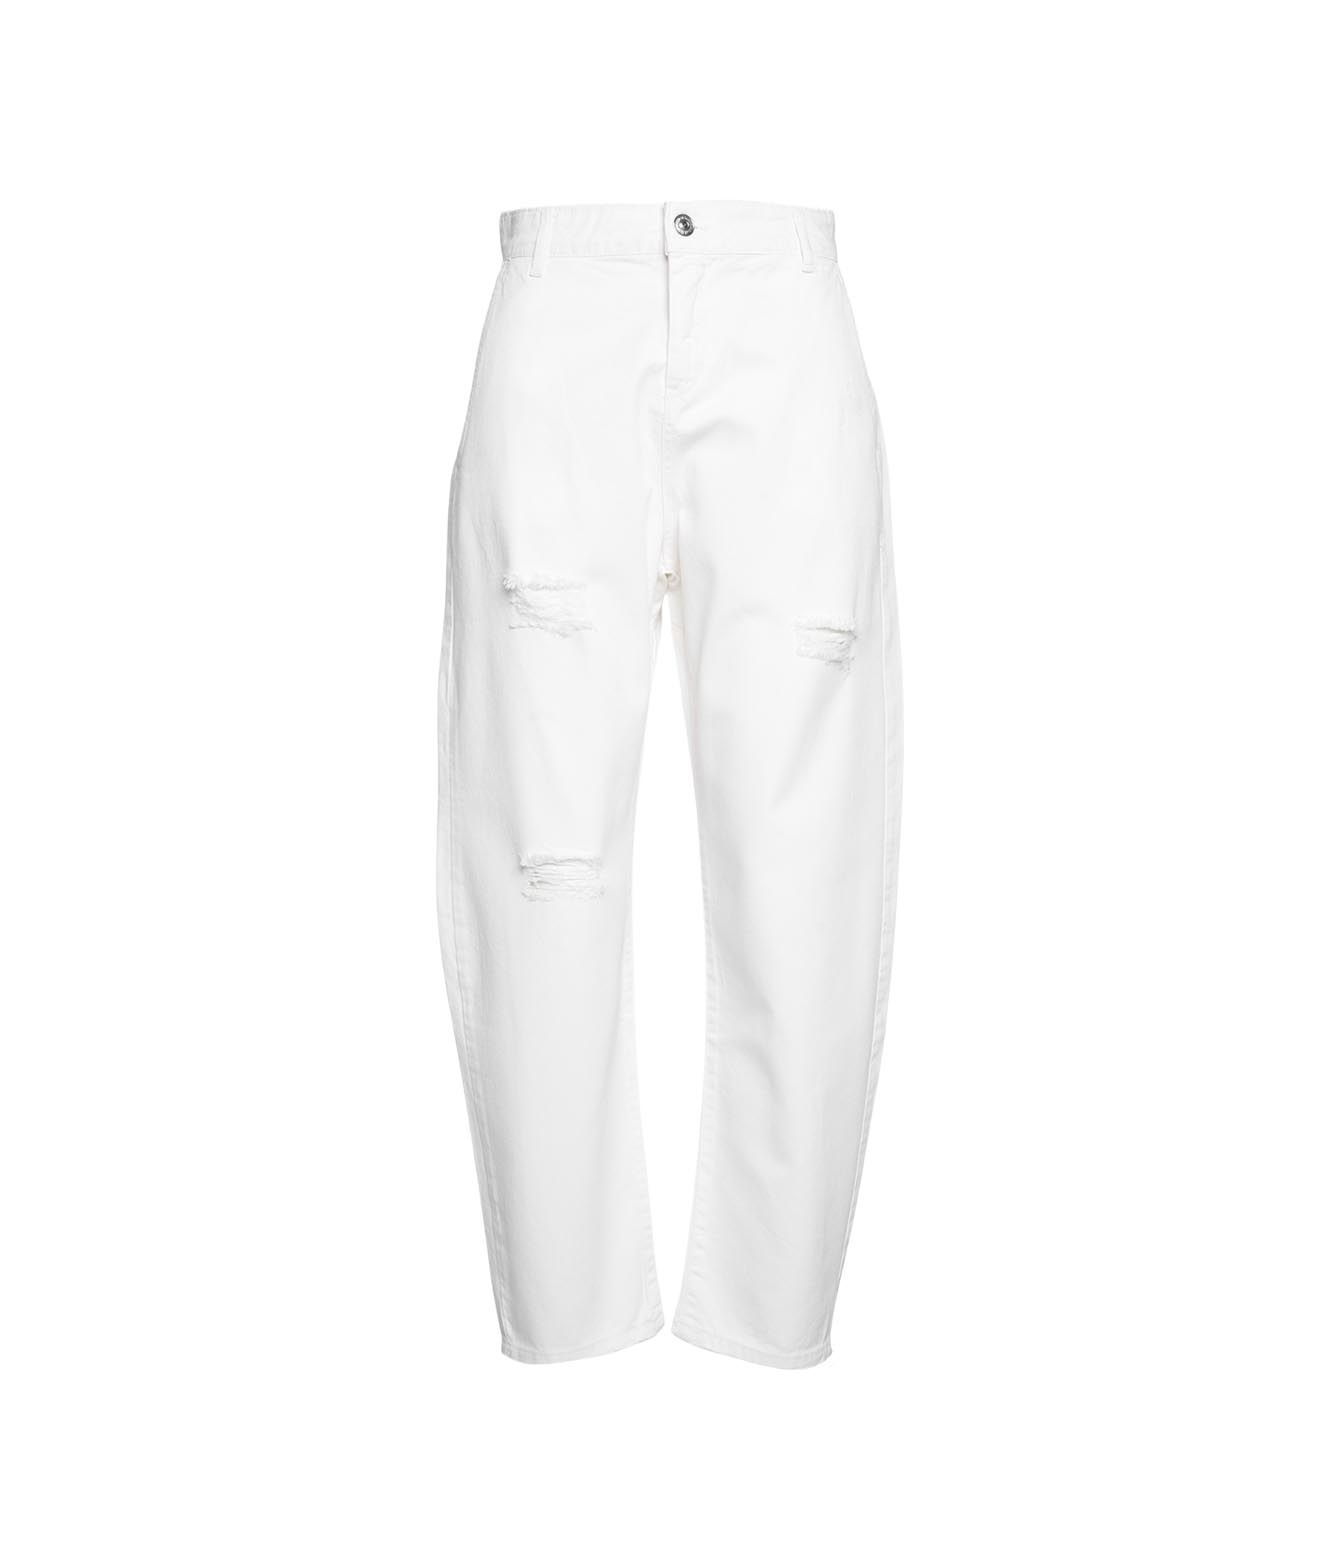 Aniye By Women's 1856451100001 White Other Materials Jeans